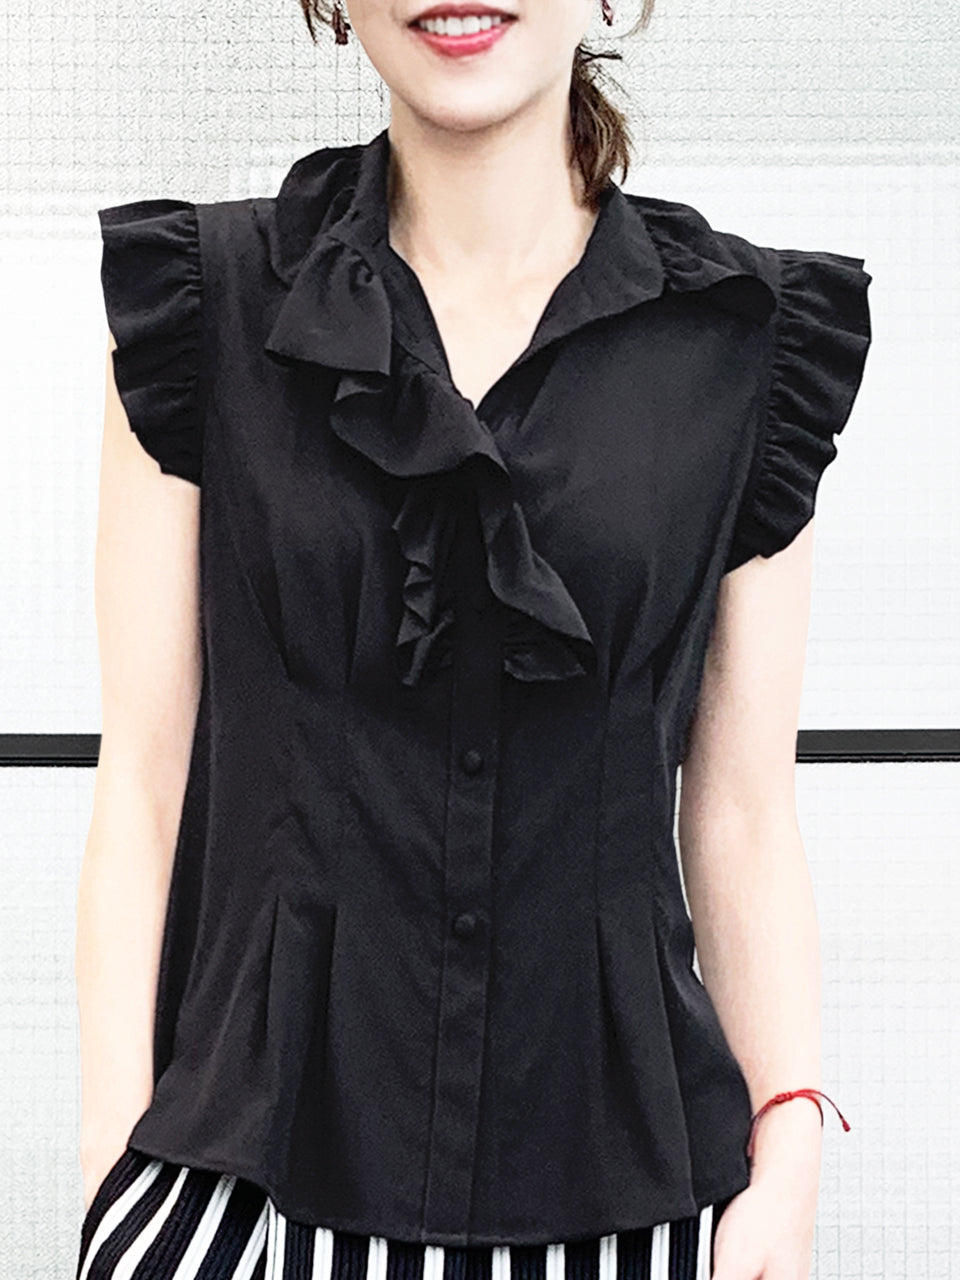 Surprise Sale! Black Ruffle High-neck Slim Silhouette Silk Blouse